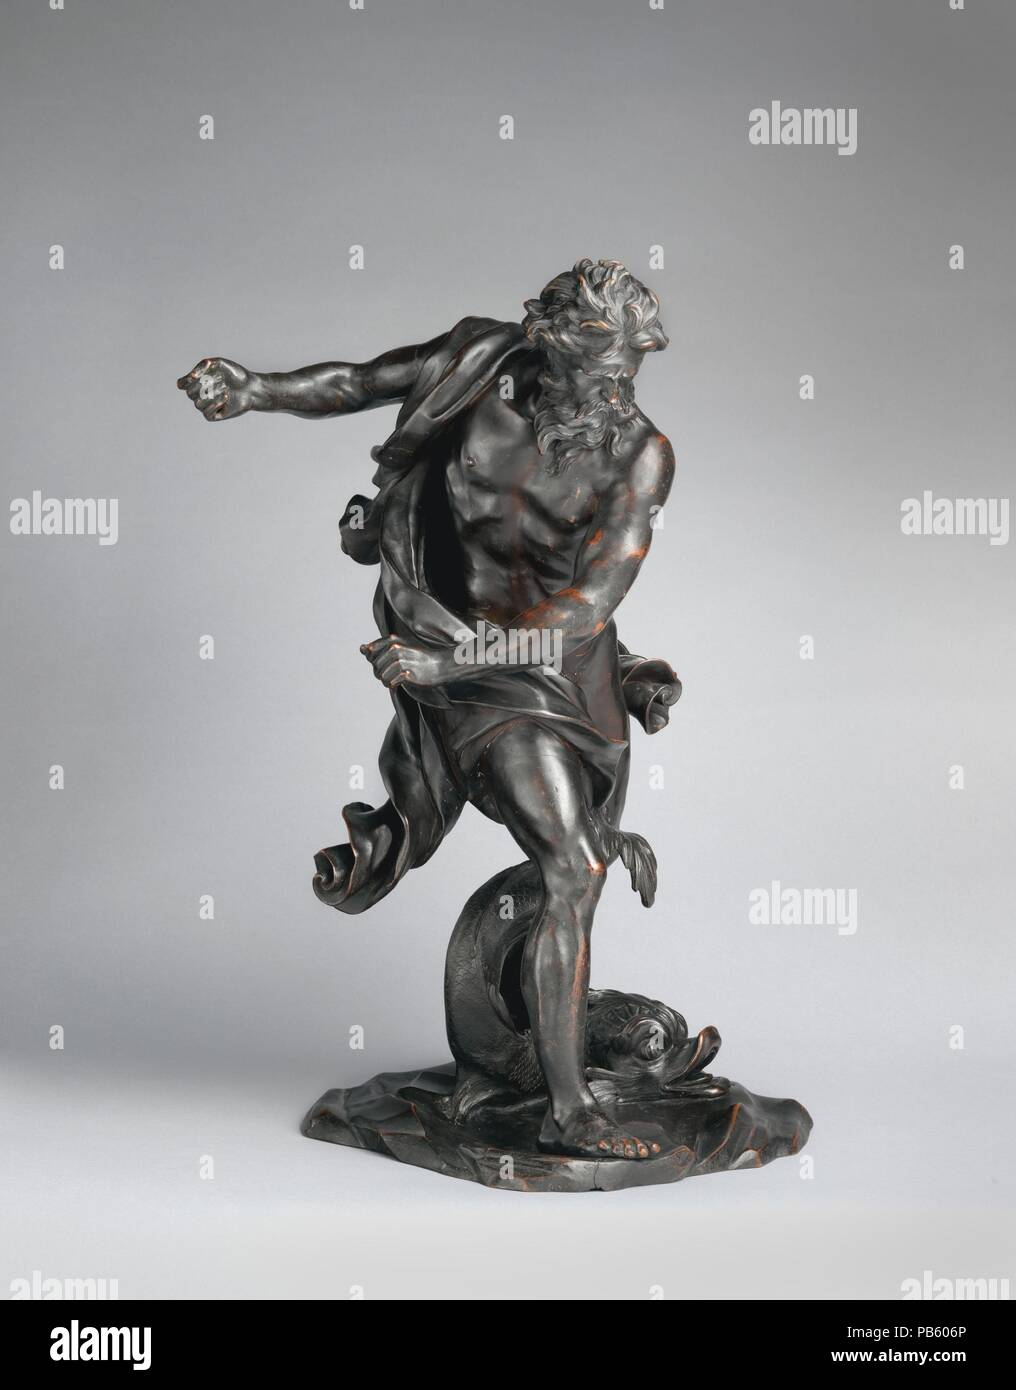 Neptune with a Dolphin. Artist: After a model by Gian Lorenzo Bernini (Italian, Naples 1598-1680 Rome). Culture: Italian. Dimensions: Overall (confirmed): 20 1/4 × 15 3/8 × 11 3/4 in. (51.4 × 39.1 × 29.8 cm). Date: 17th century.  Bernini's marble original, of which this bronze is a variant and not a copy, is in the collection of the Earl of Yarborough, England. Only one bronze variant aside from the Metropolitan's piece has been published. Museum: Metropolitan Museum of Art, New York, USA. - Stock Image